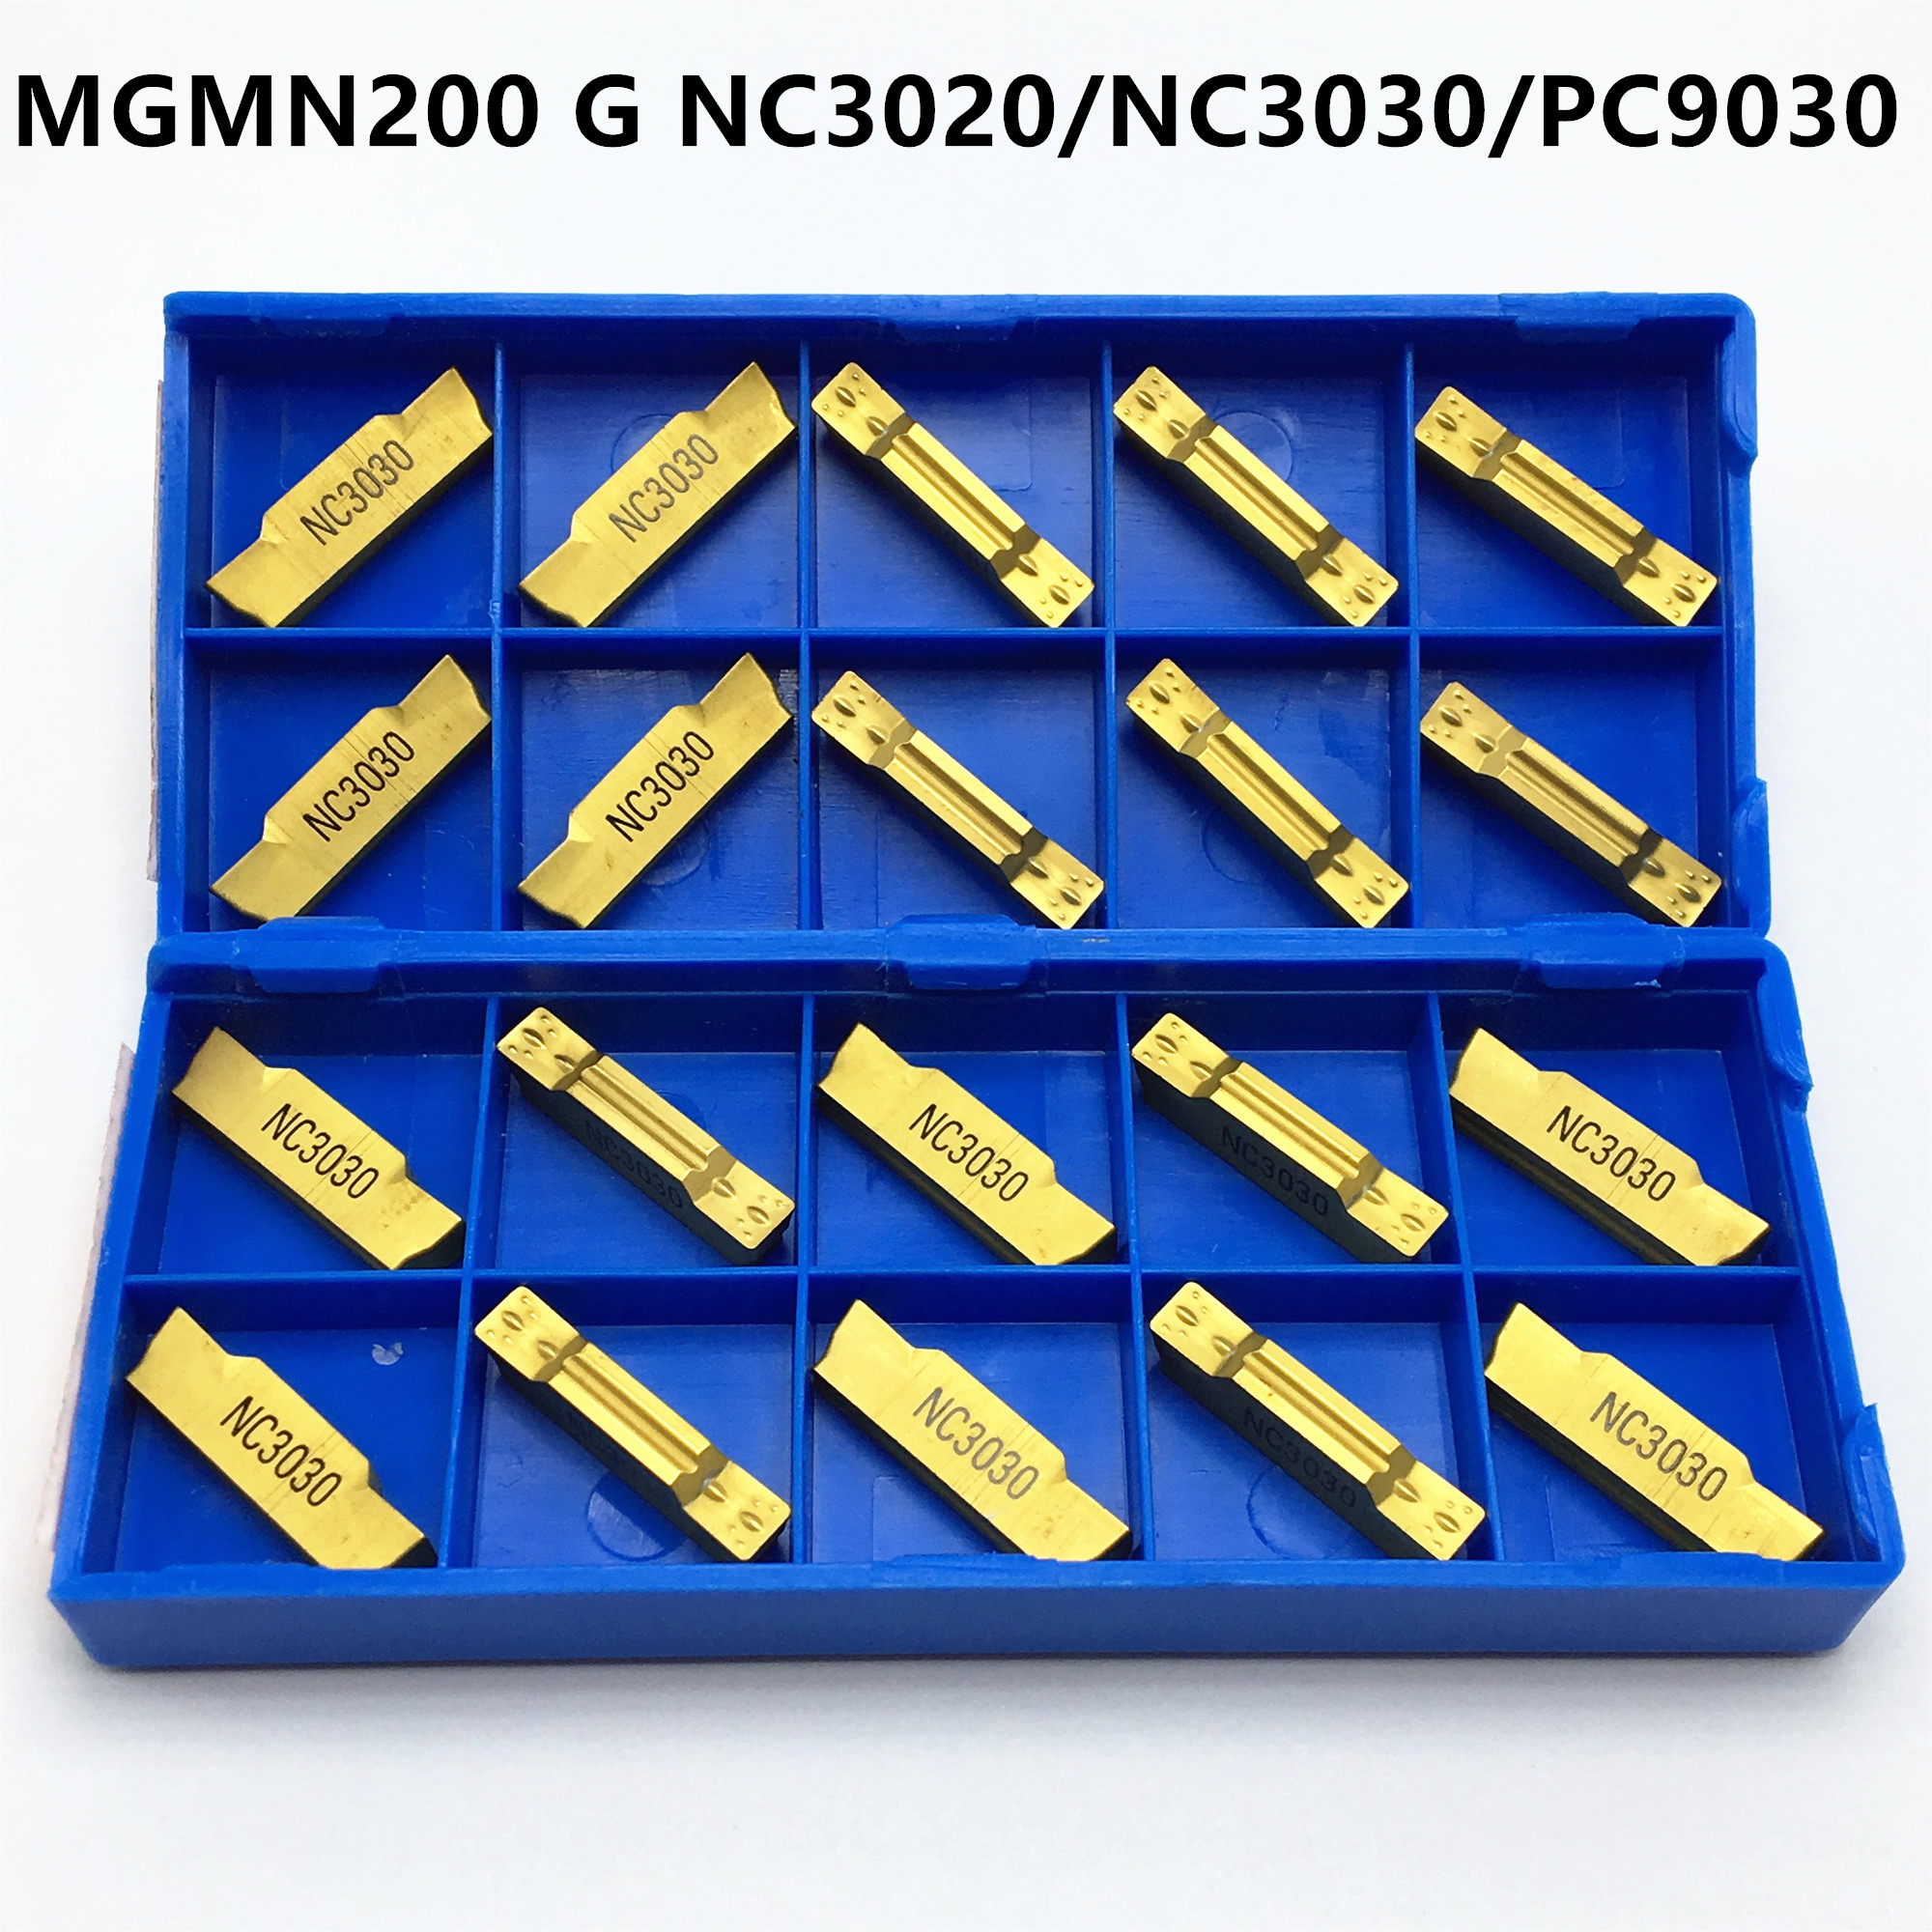 MGMN150-G NC3030 1.5mm wide Cutting blade carbide insert CNC TOOL 10Pcs